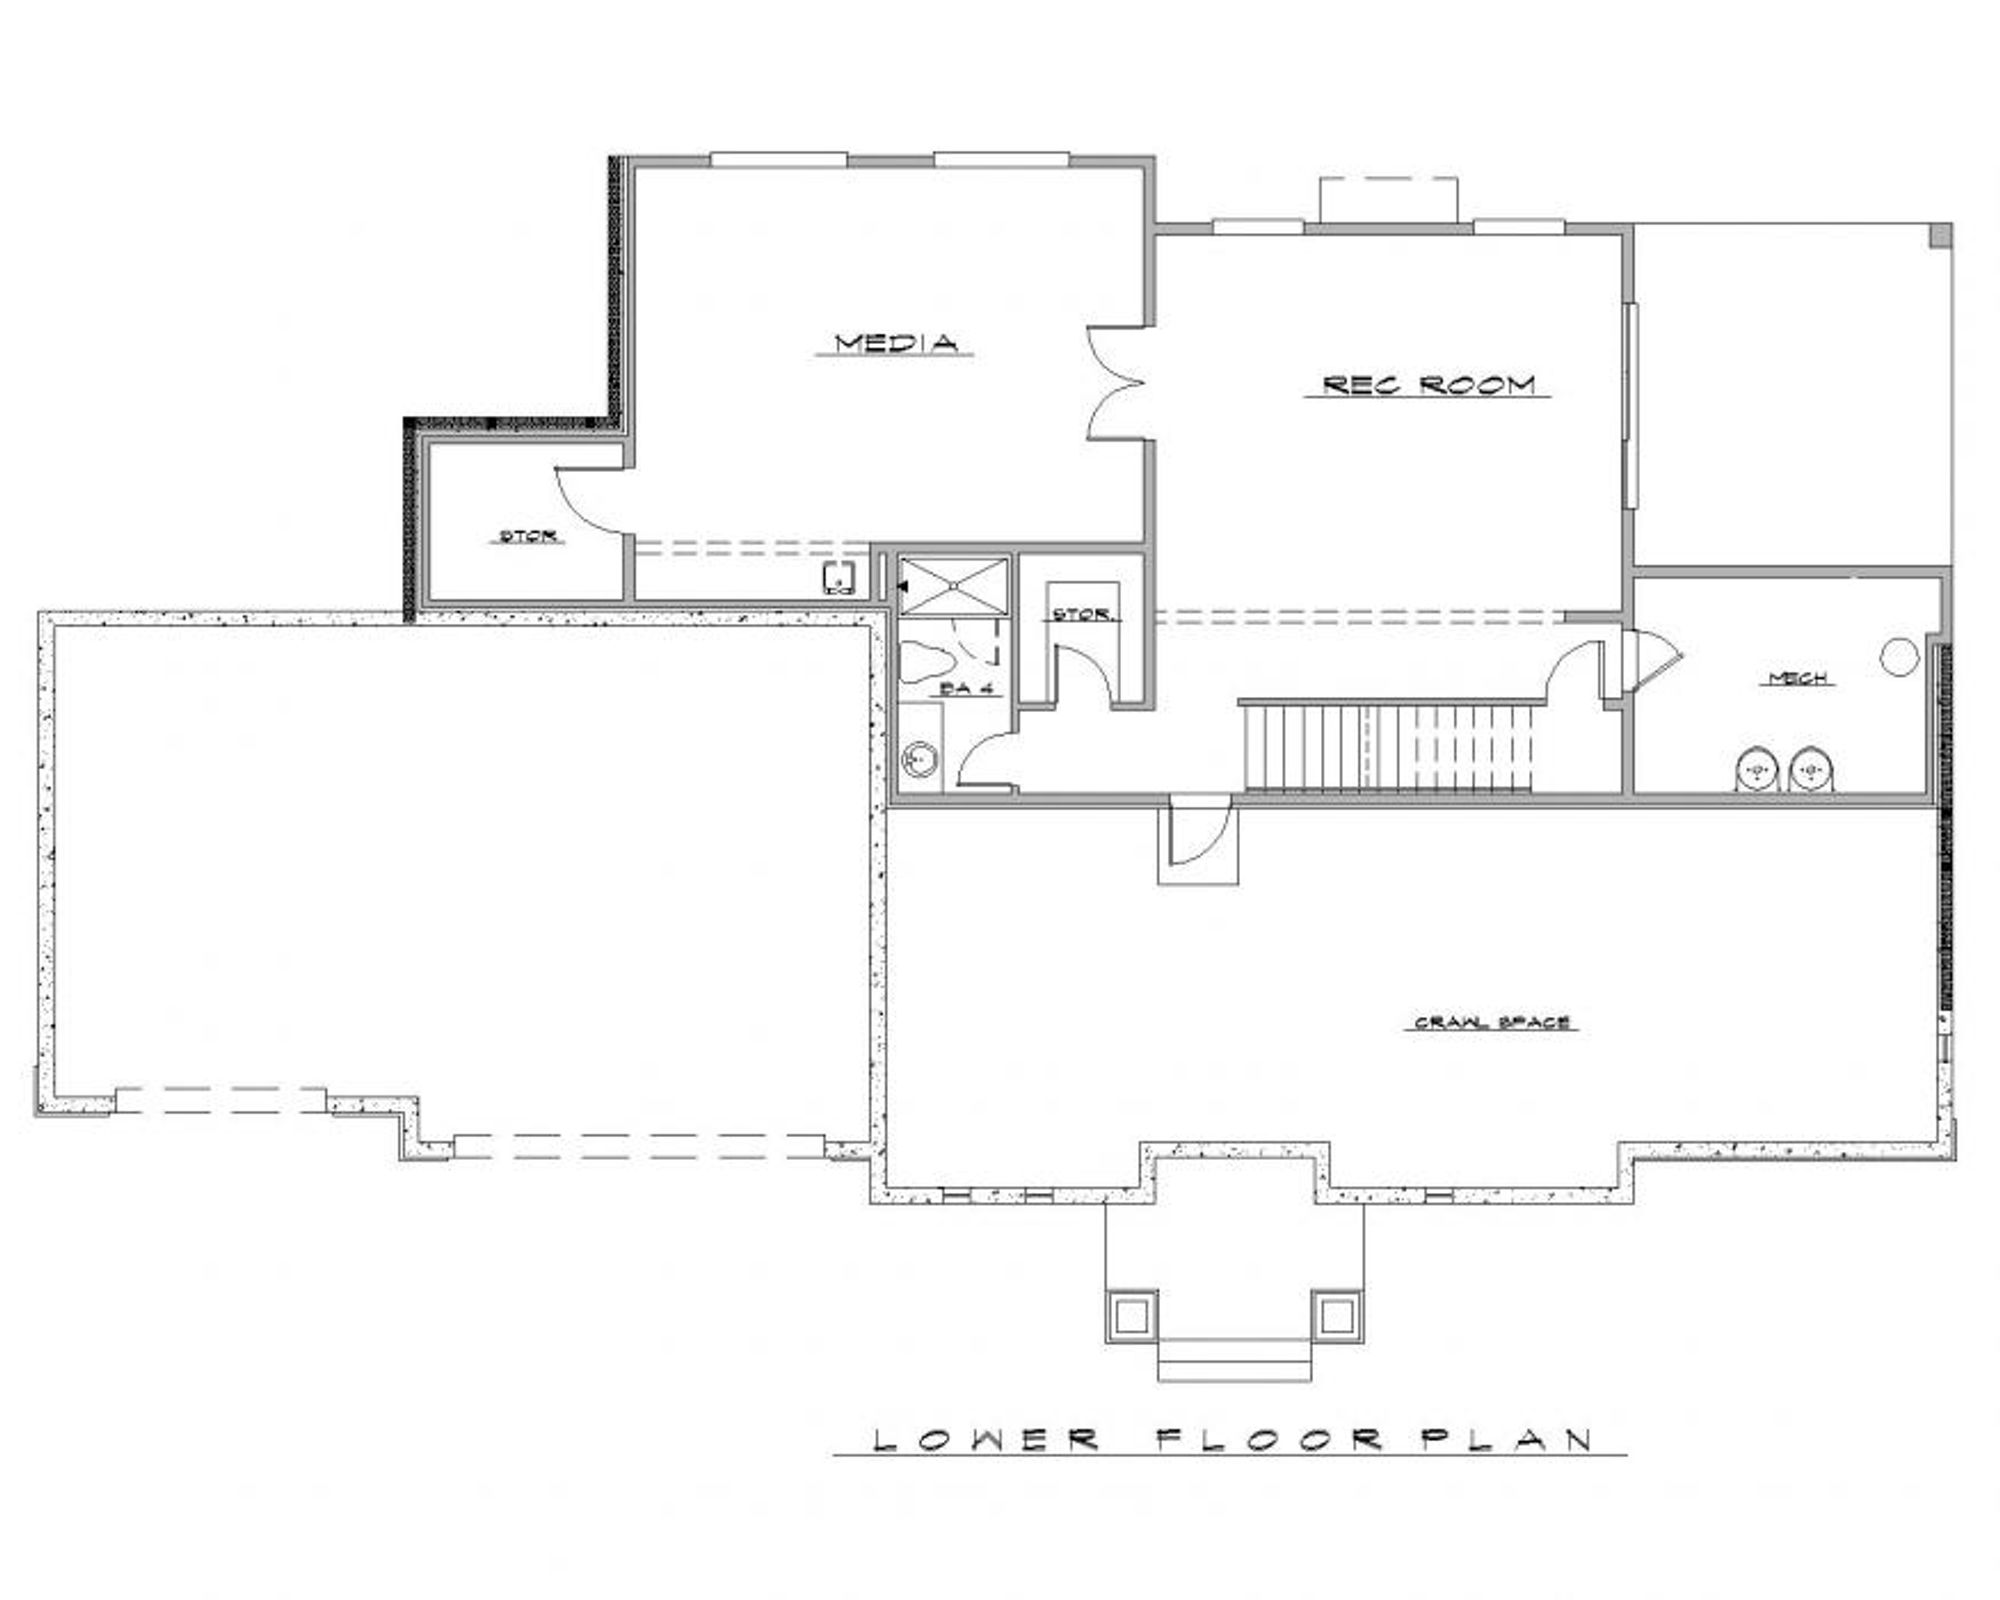 Calabria B Lower Floor Plan